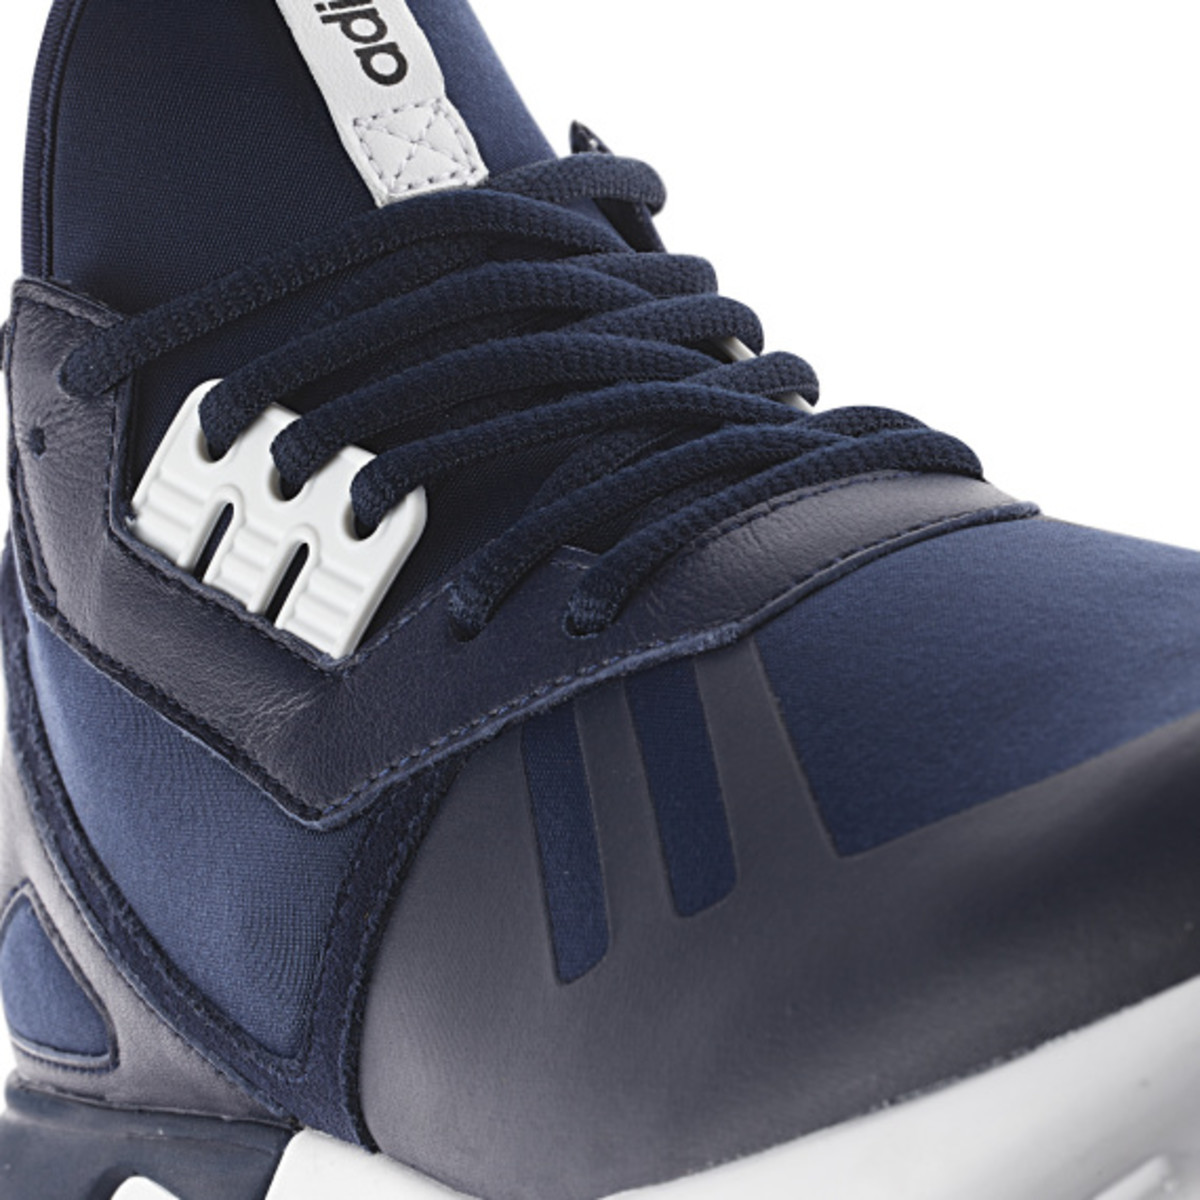 adidas Originals Tubular Runner - Fall/Winter 2014 - 9